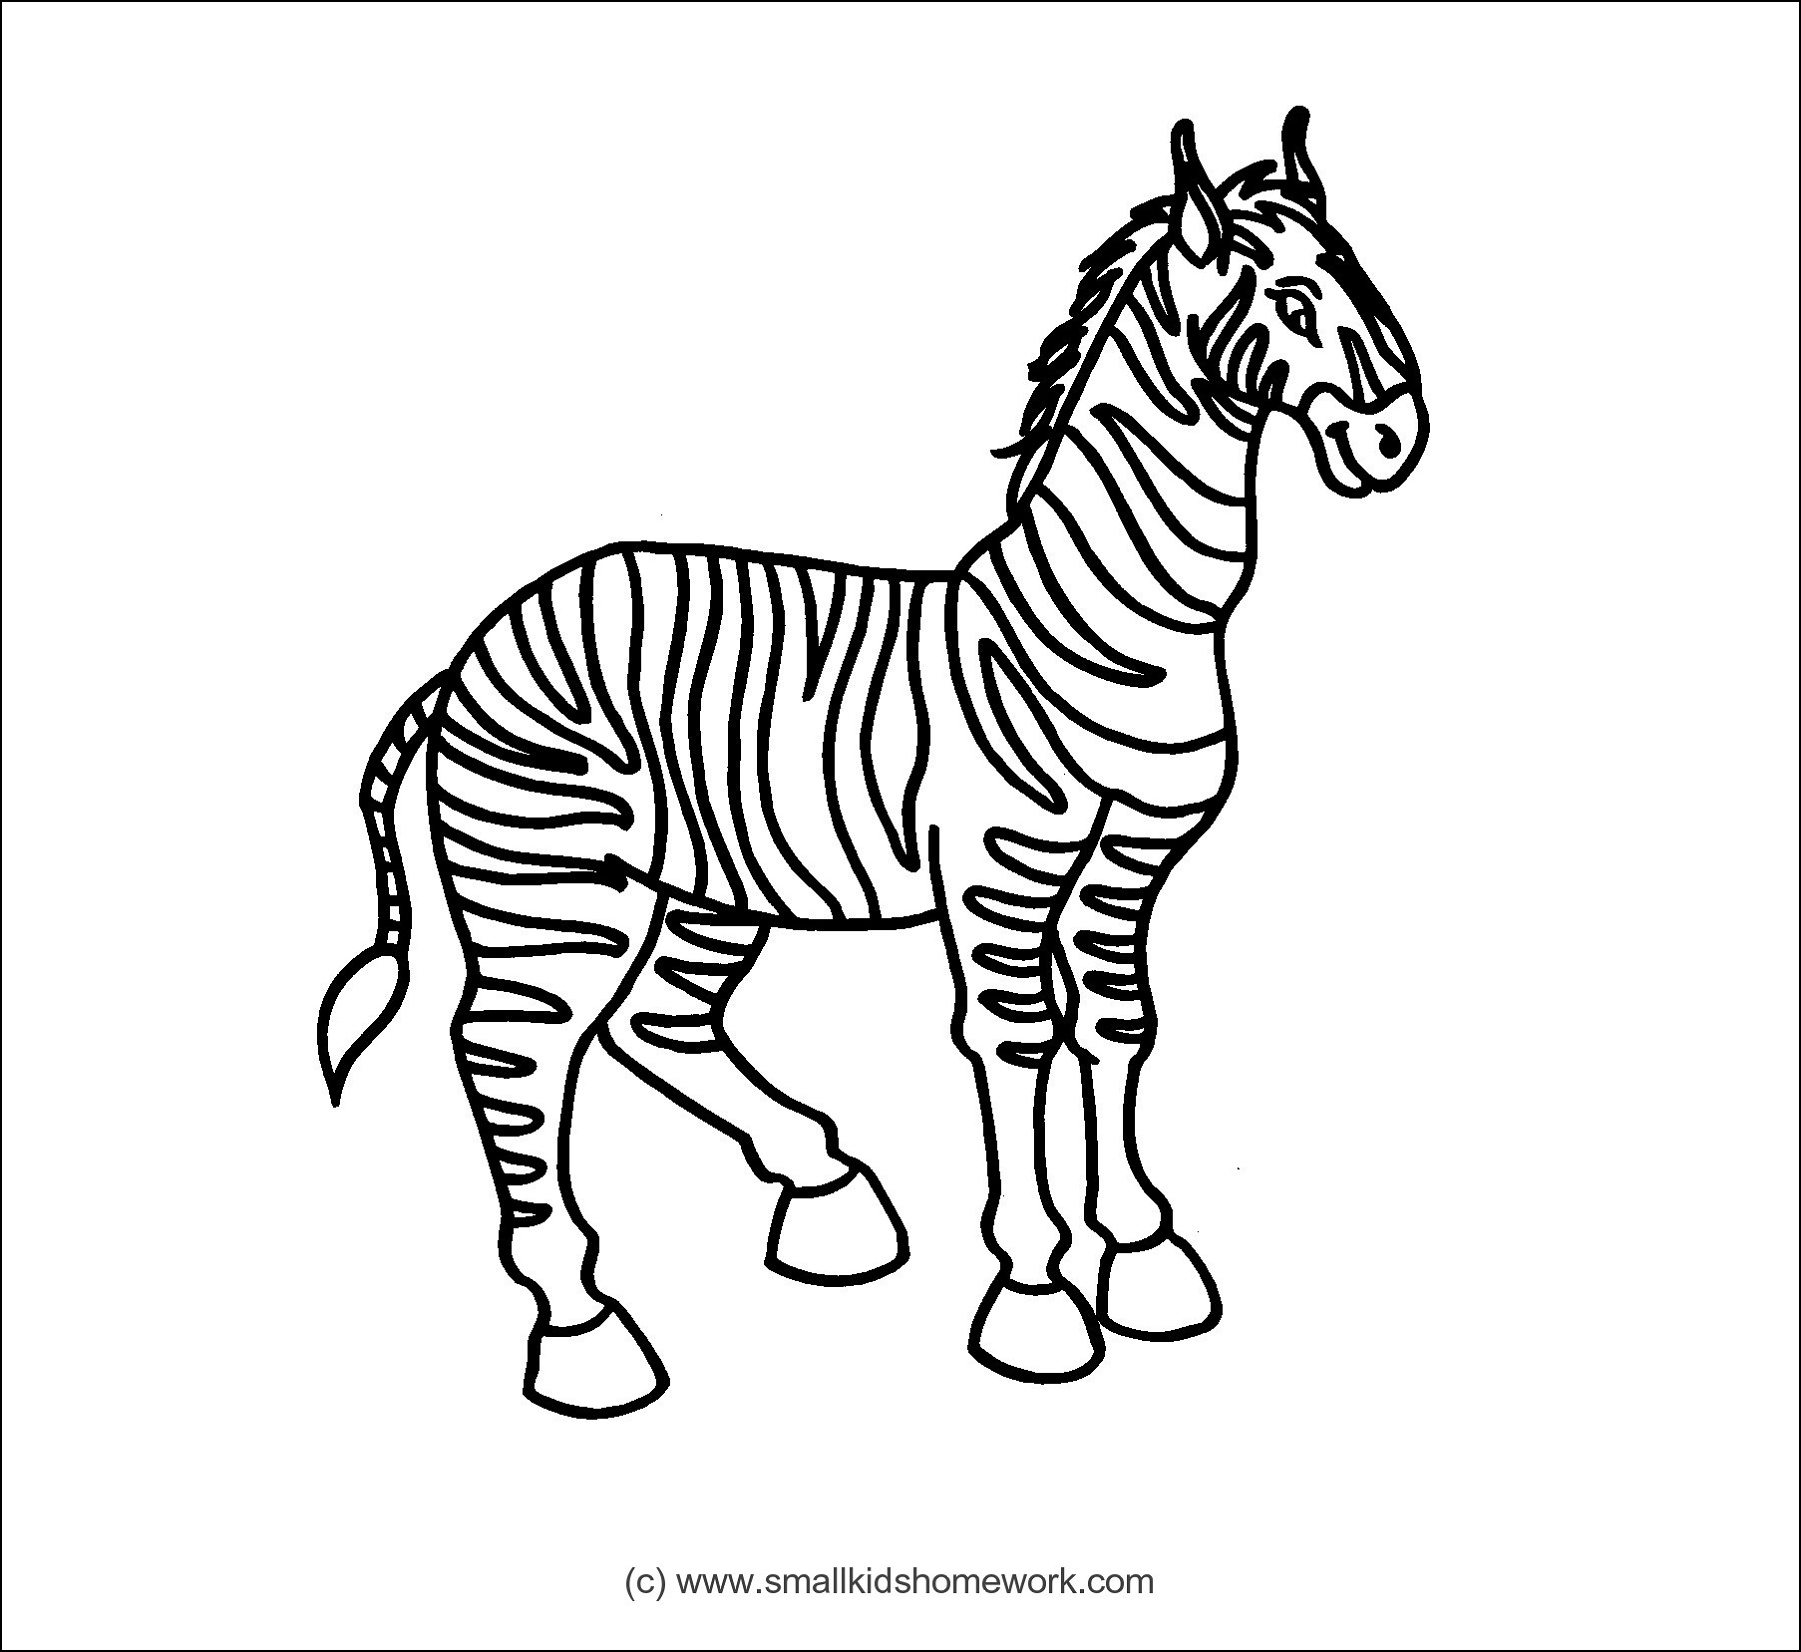 Zebra.jpg